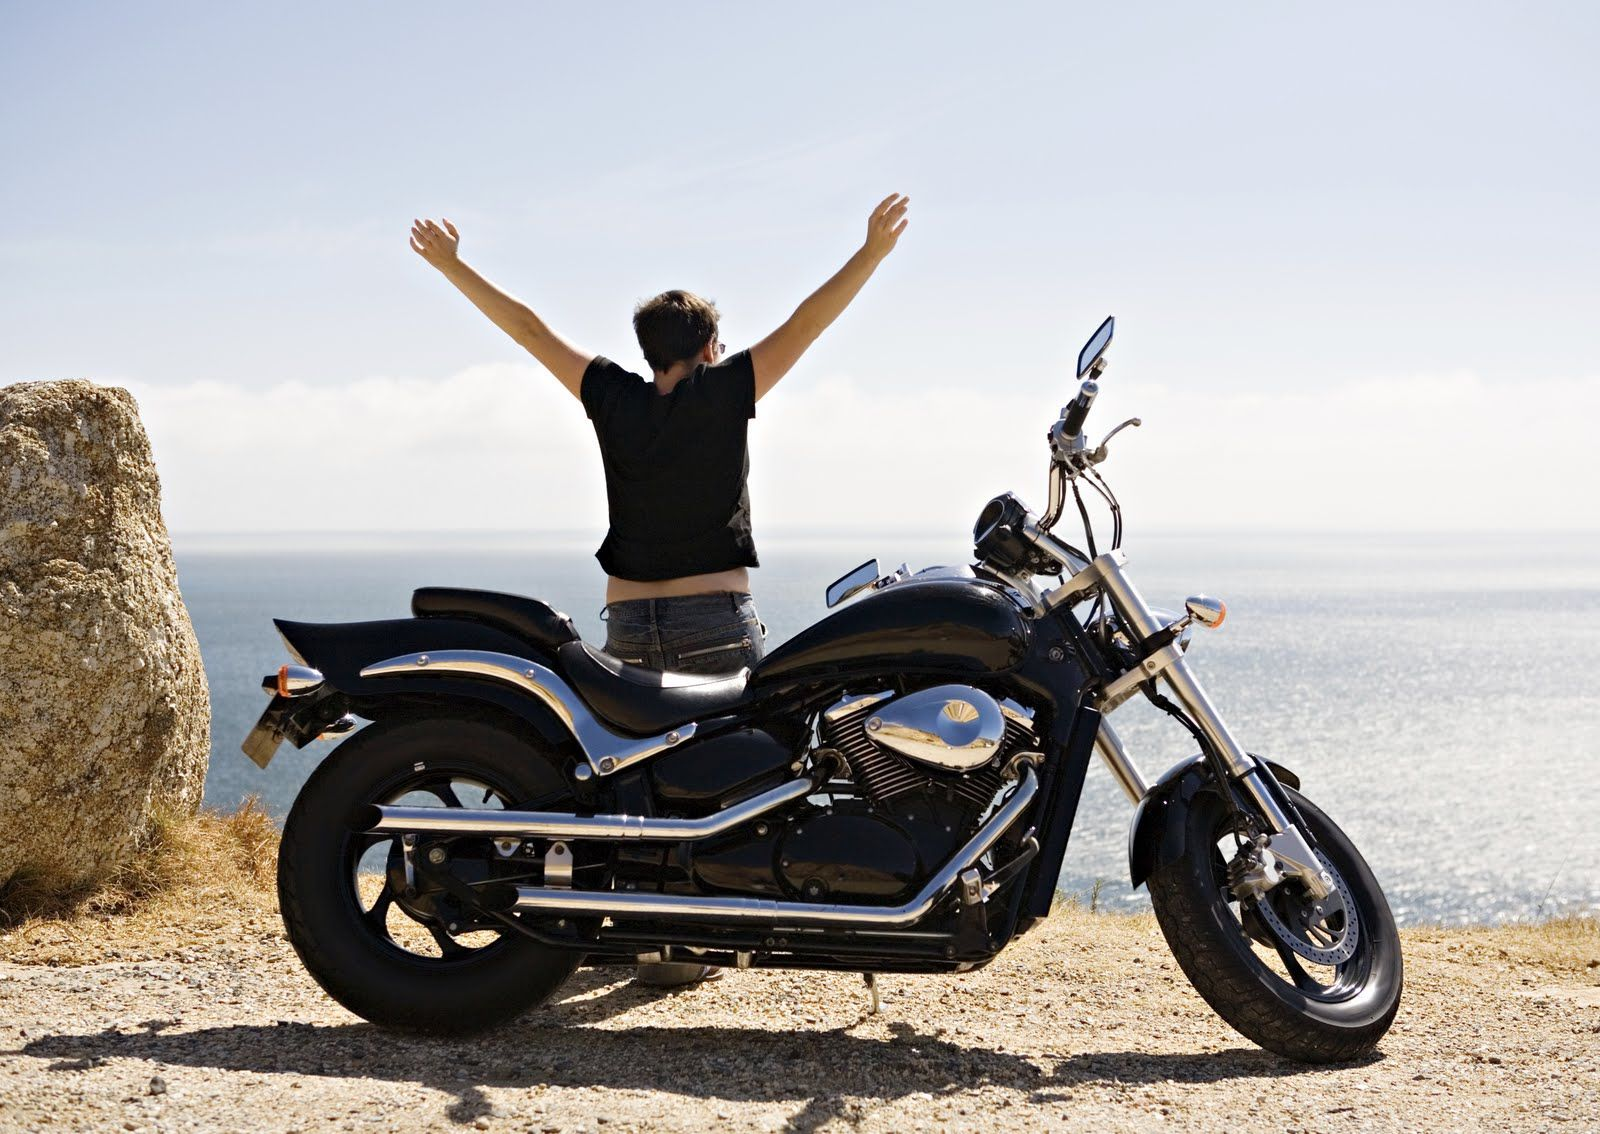 Motorcycle Insurance Quotes How To Get Discounts On Your Motorcycle Insurance Policy .